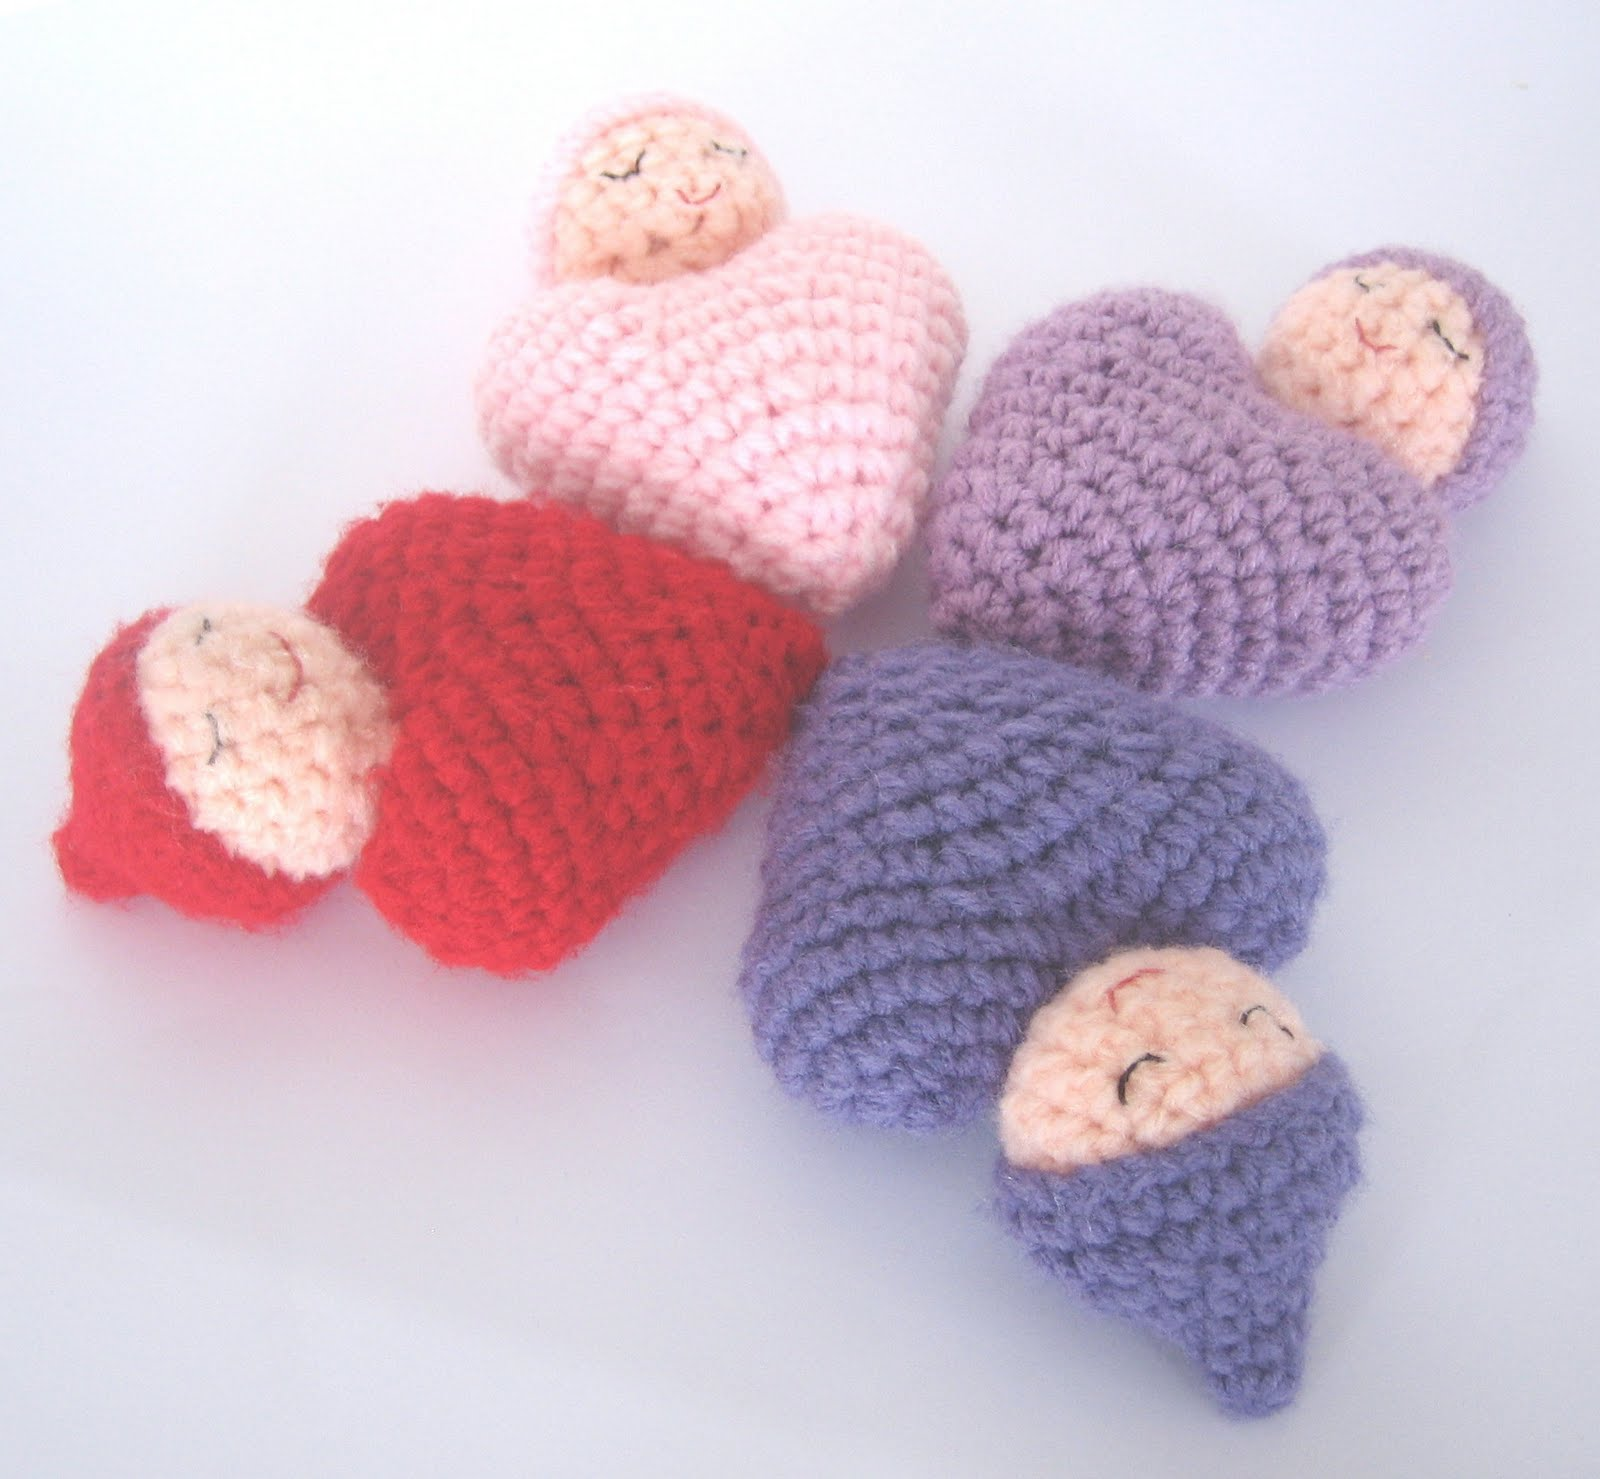 Crochet Patterns Hearts : Free crochet heart patterns, crocheting instructions for heart afghan